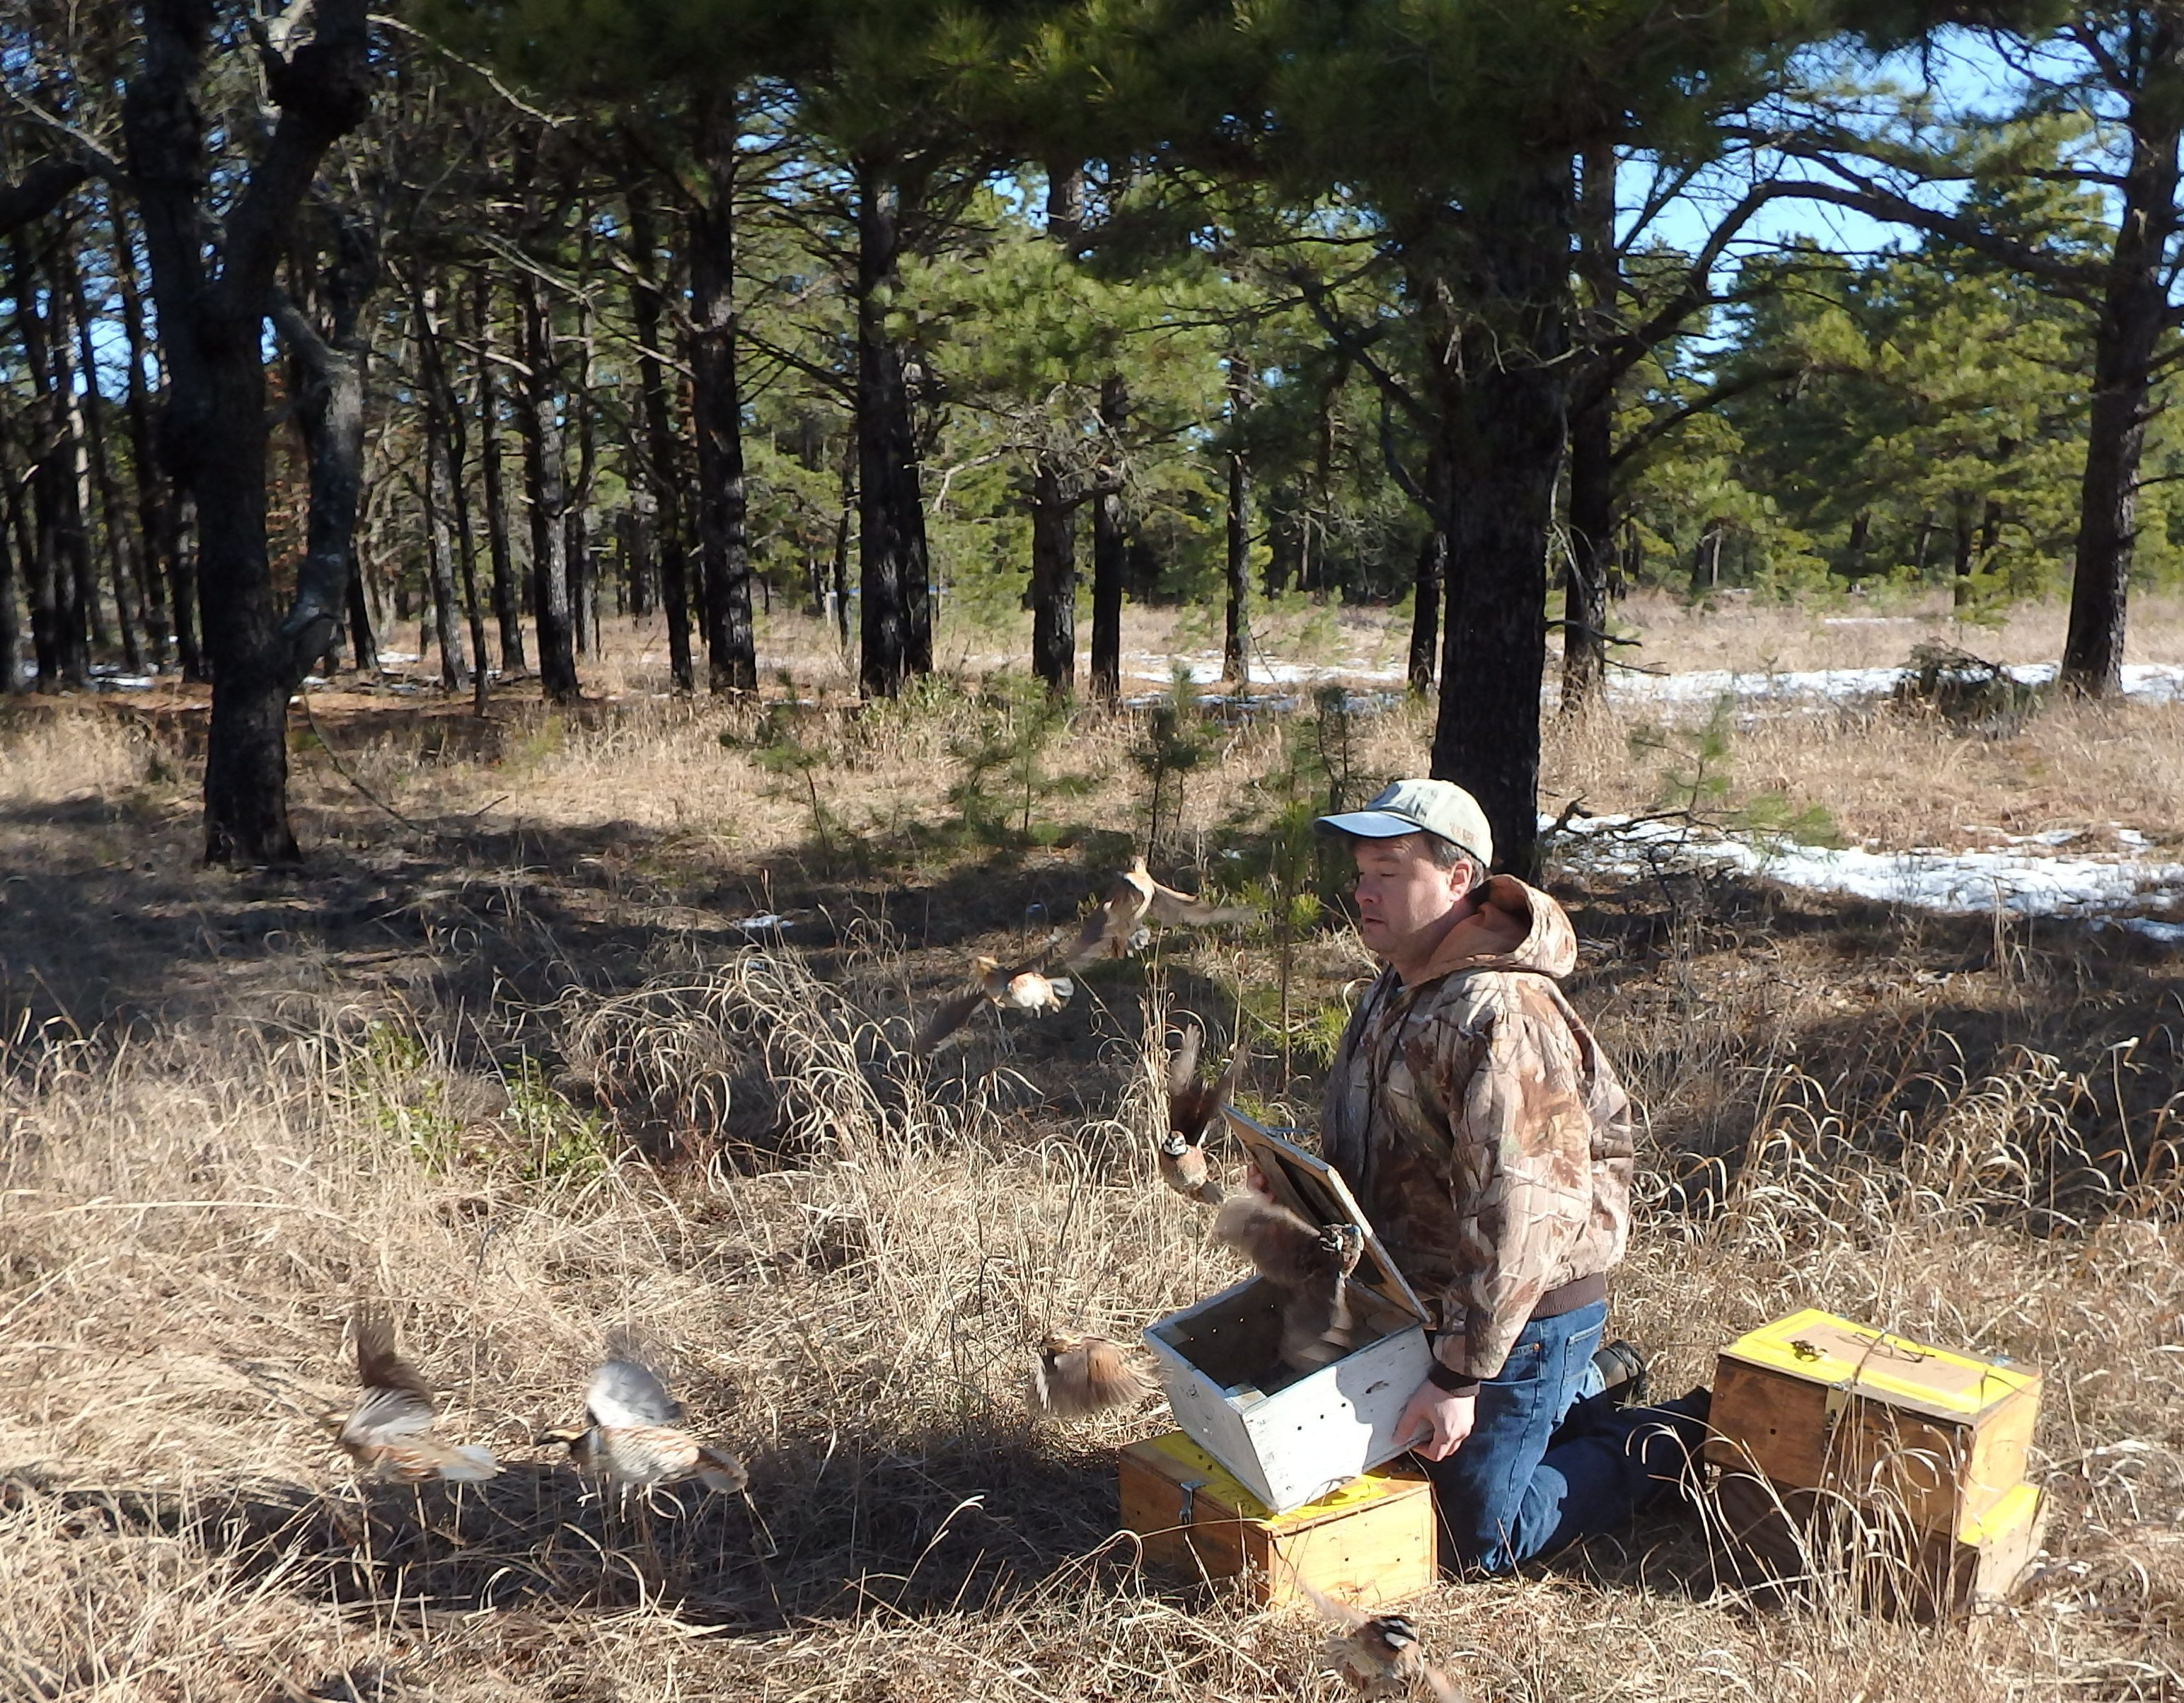 John Parke, of the NJ Audubon Society, releasing wild Northern bobwhite quails from Georgia on a cranberry farm in the Pinelands.